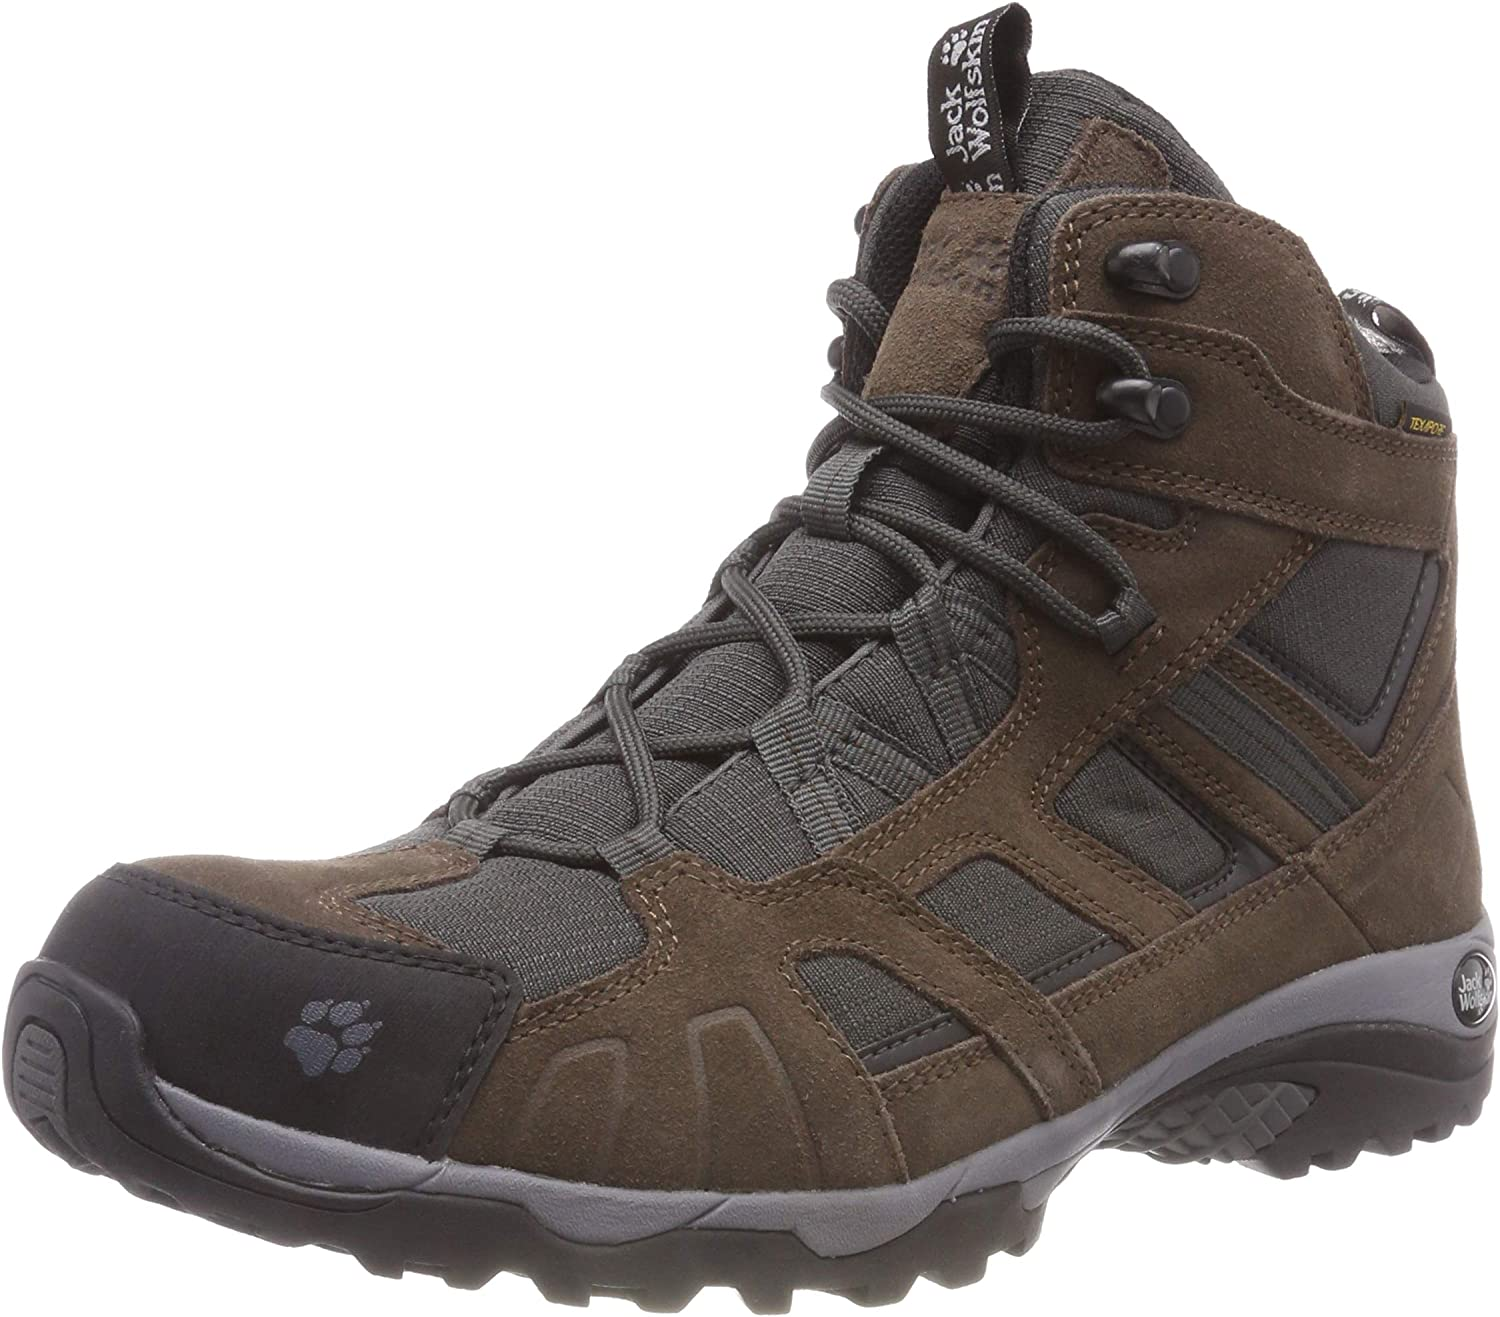 Jack Wolfskin Vojo Hike Mid Texapore, Mens Trekking and Hiking Boots